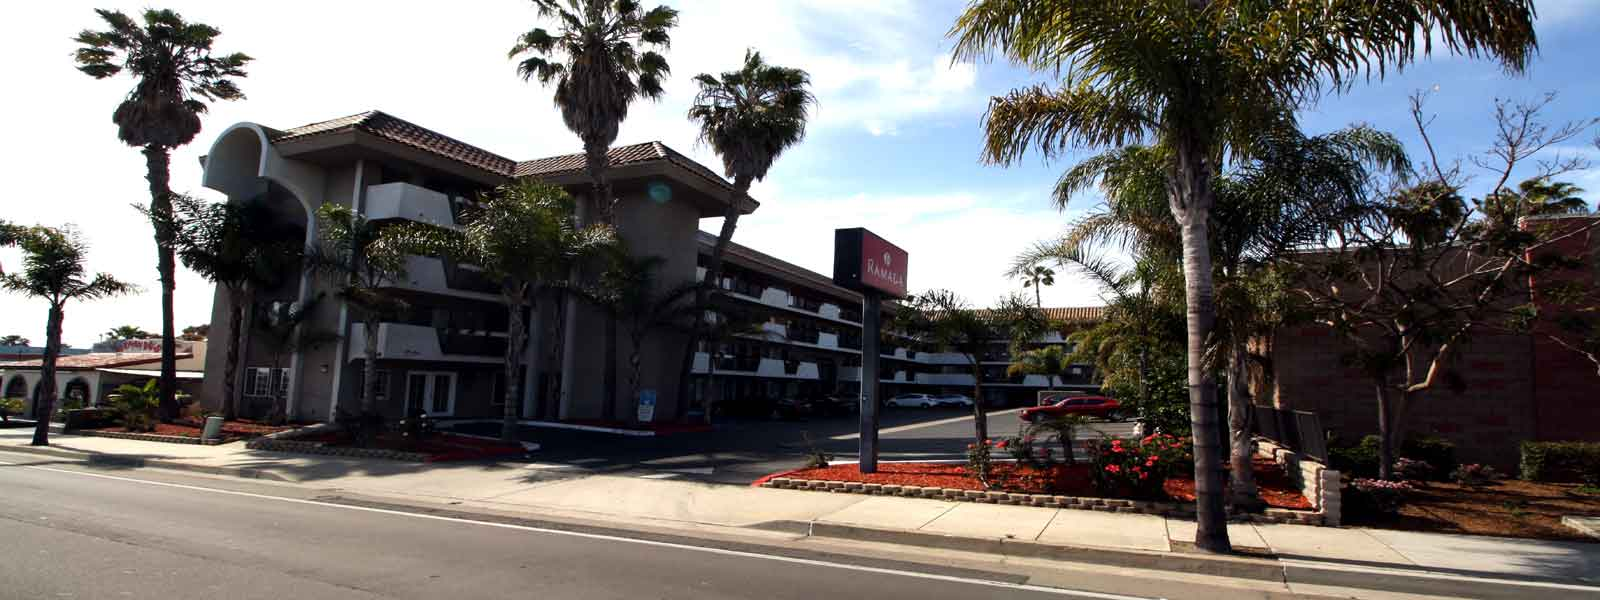 Clean Comfortable Rooms Lodging Hotels Motels in Oceanside California